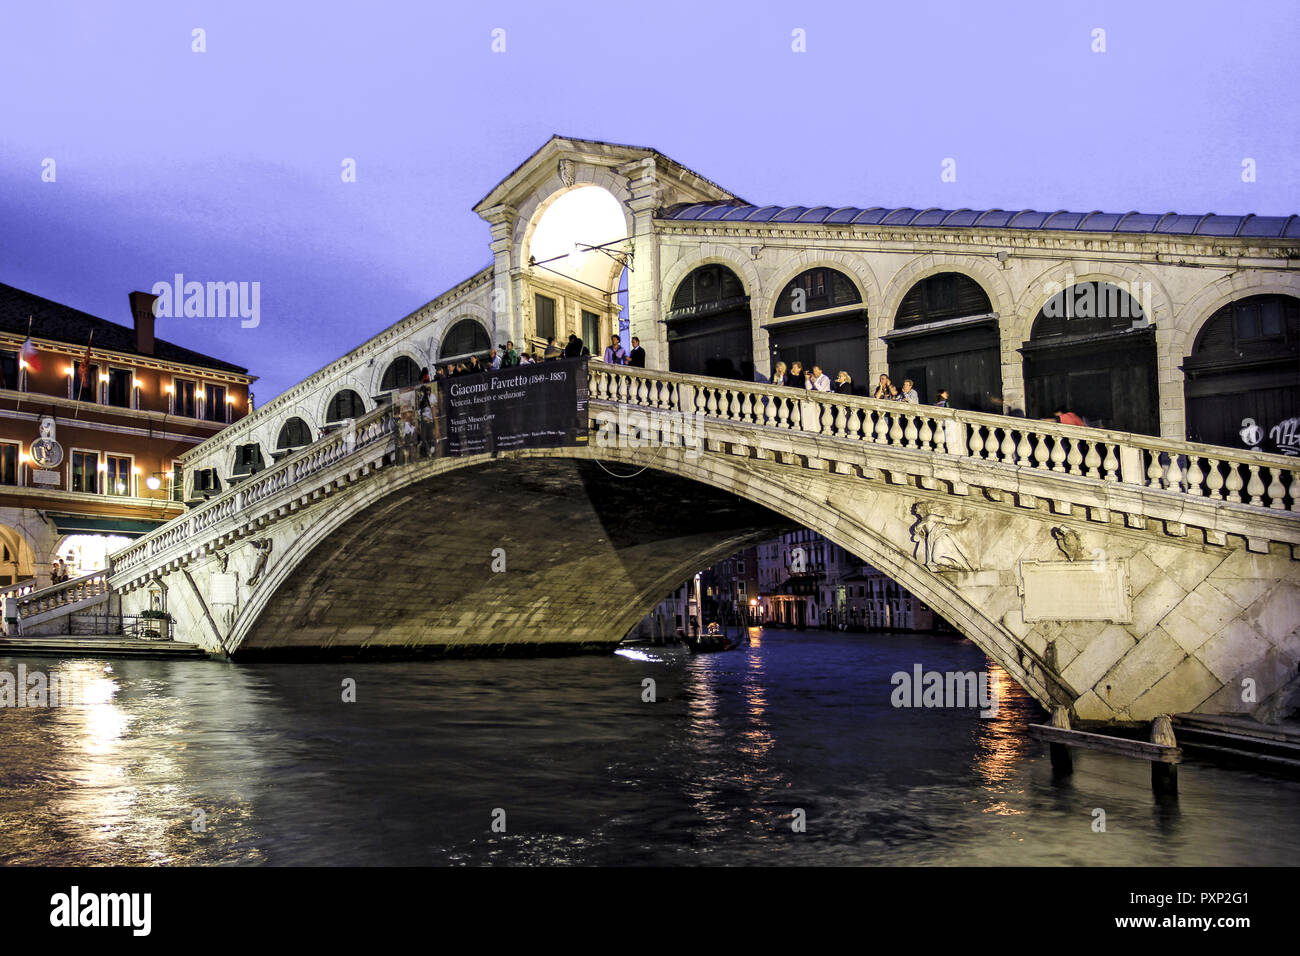 Canale Grande, Rialto Bruecke in Venedig, Italien Stock Photo